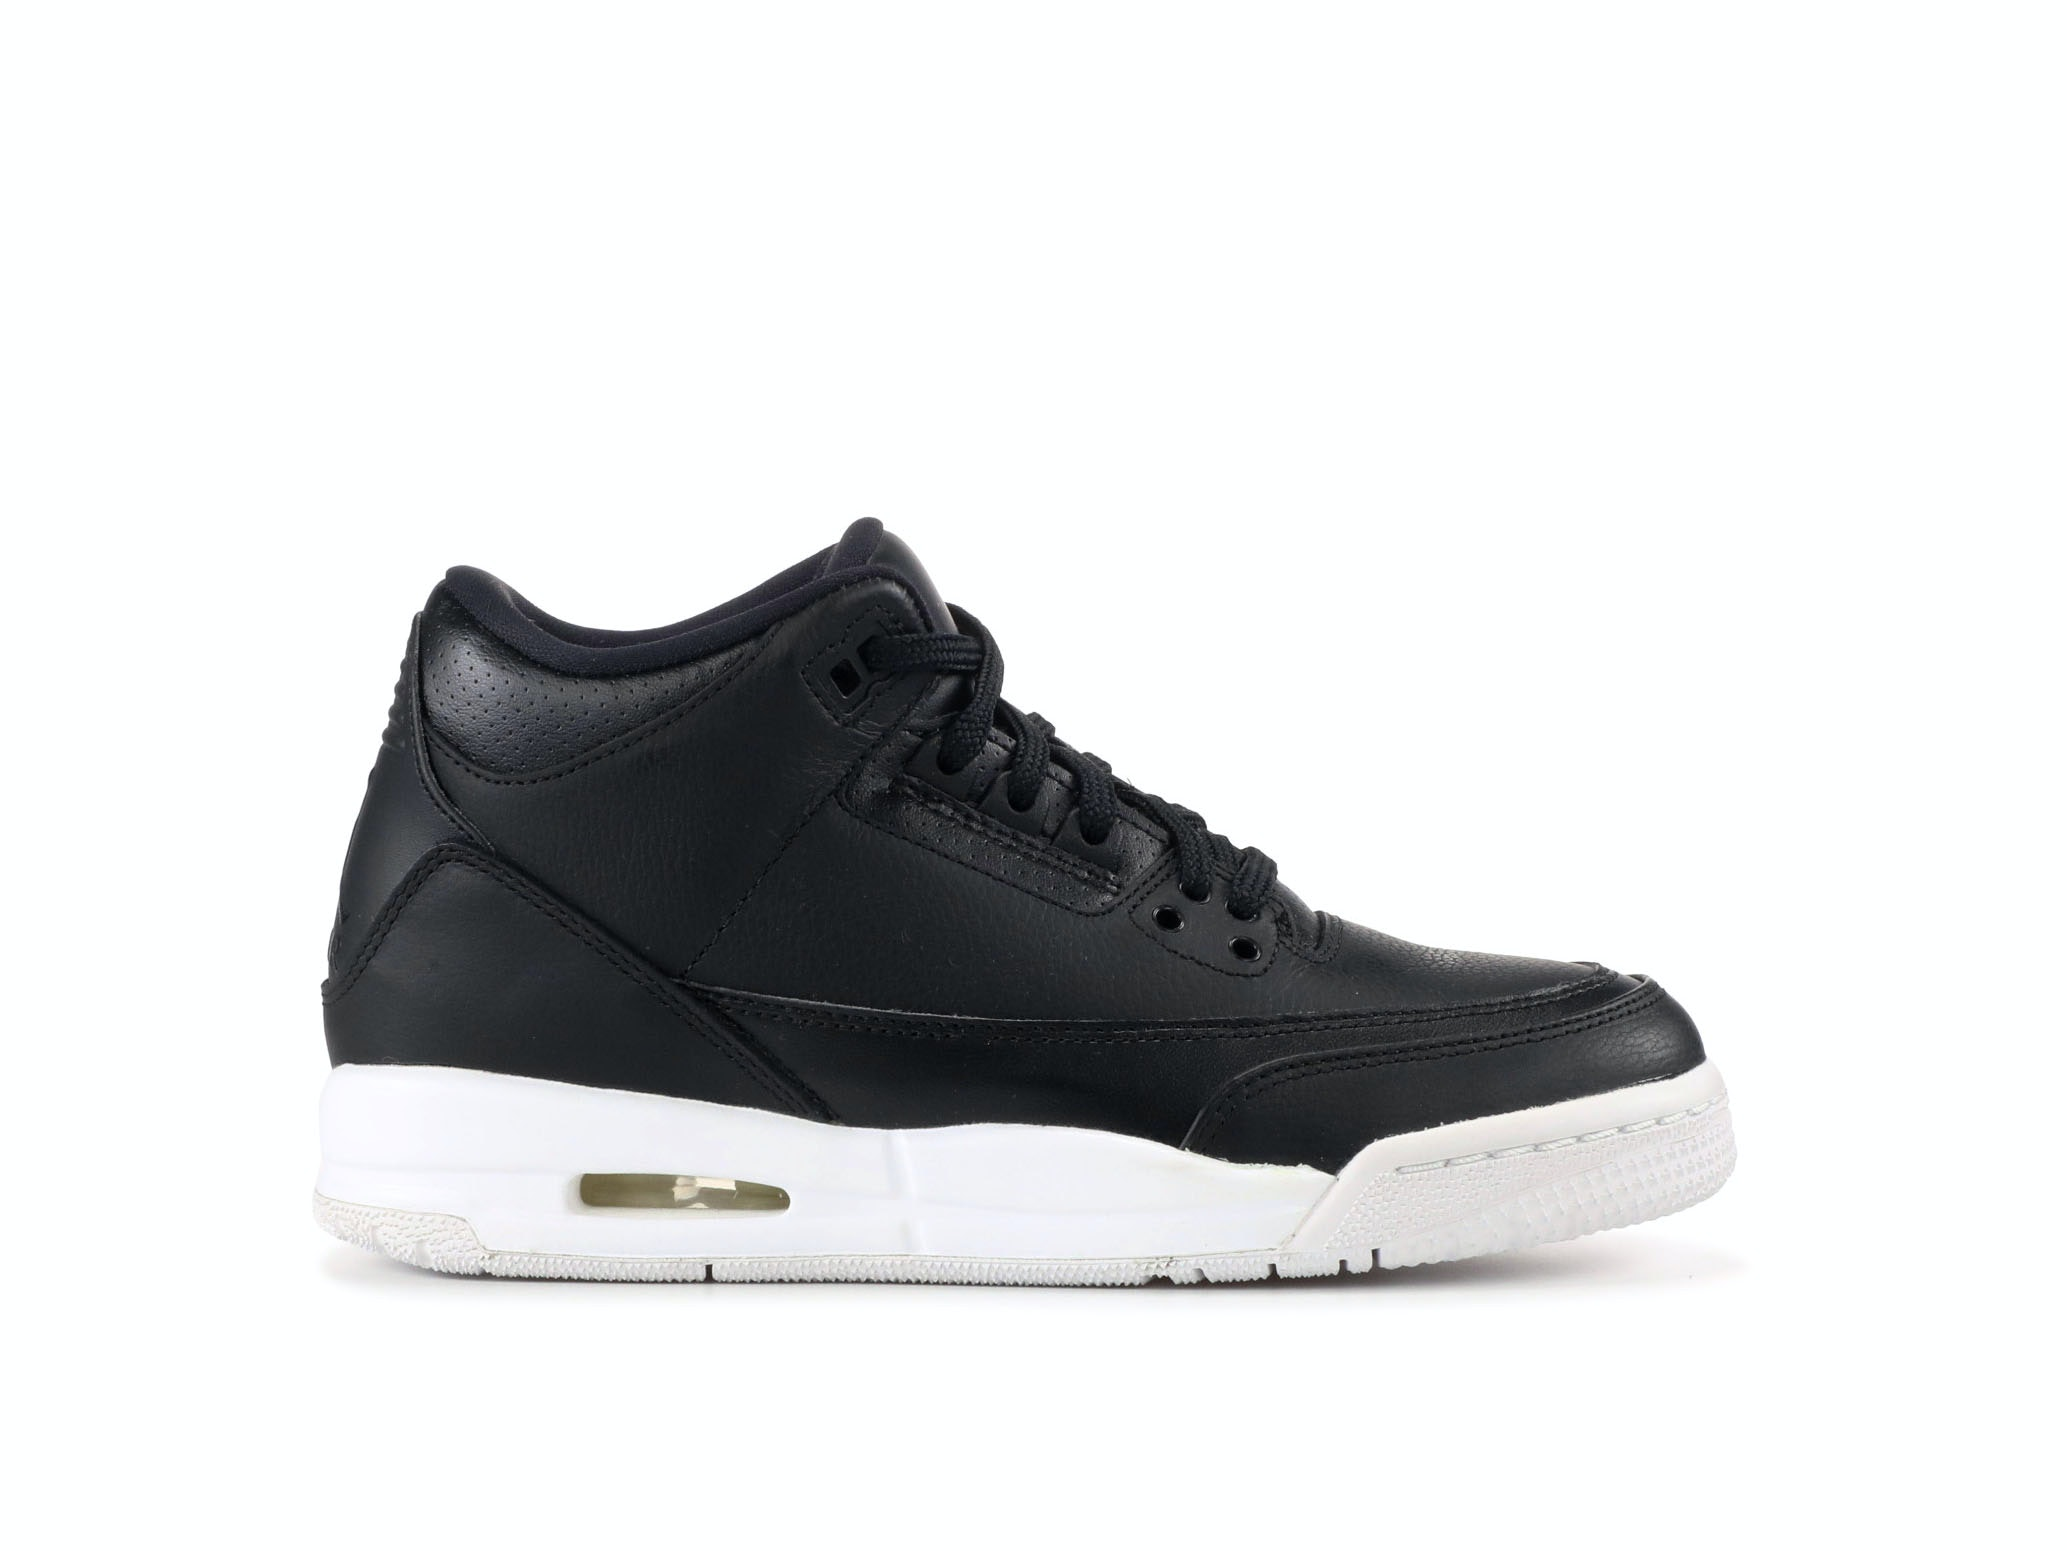 687ad7cea44 Shop Air Jordan 3 Retro BG Cyber Monday Online | Laced